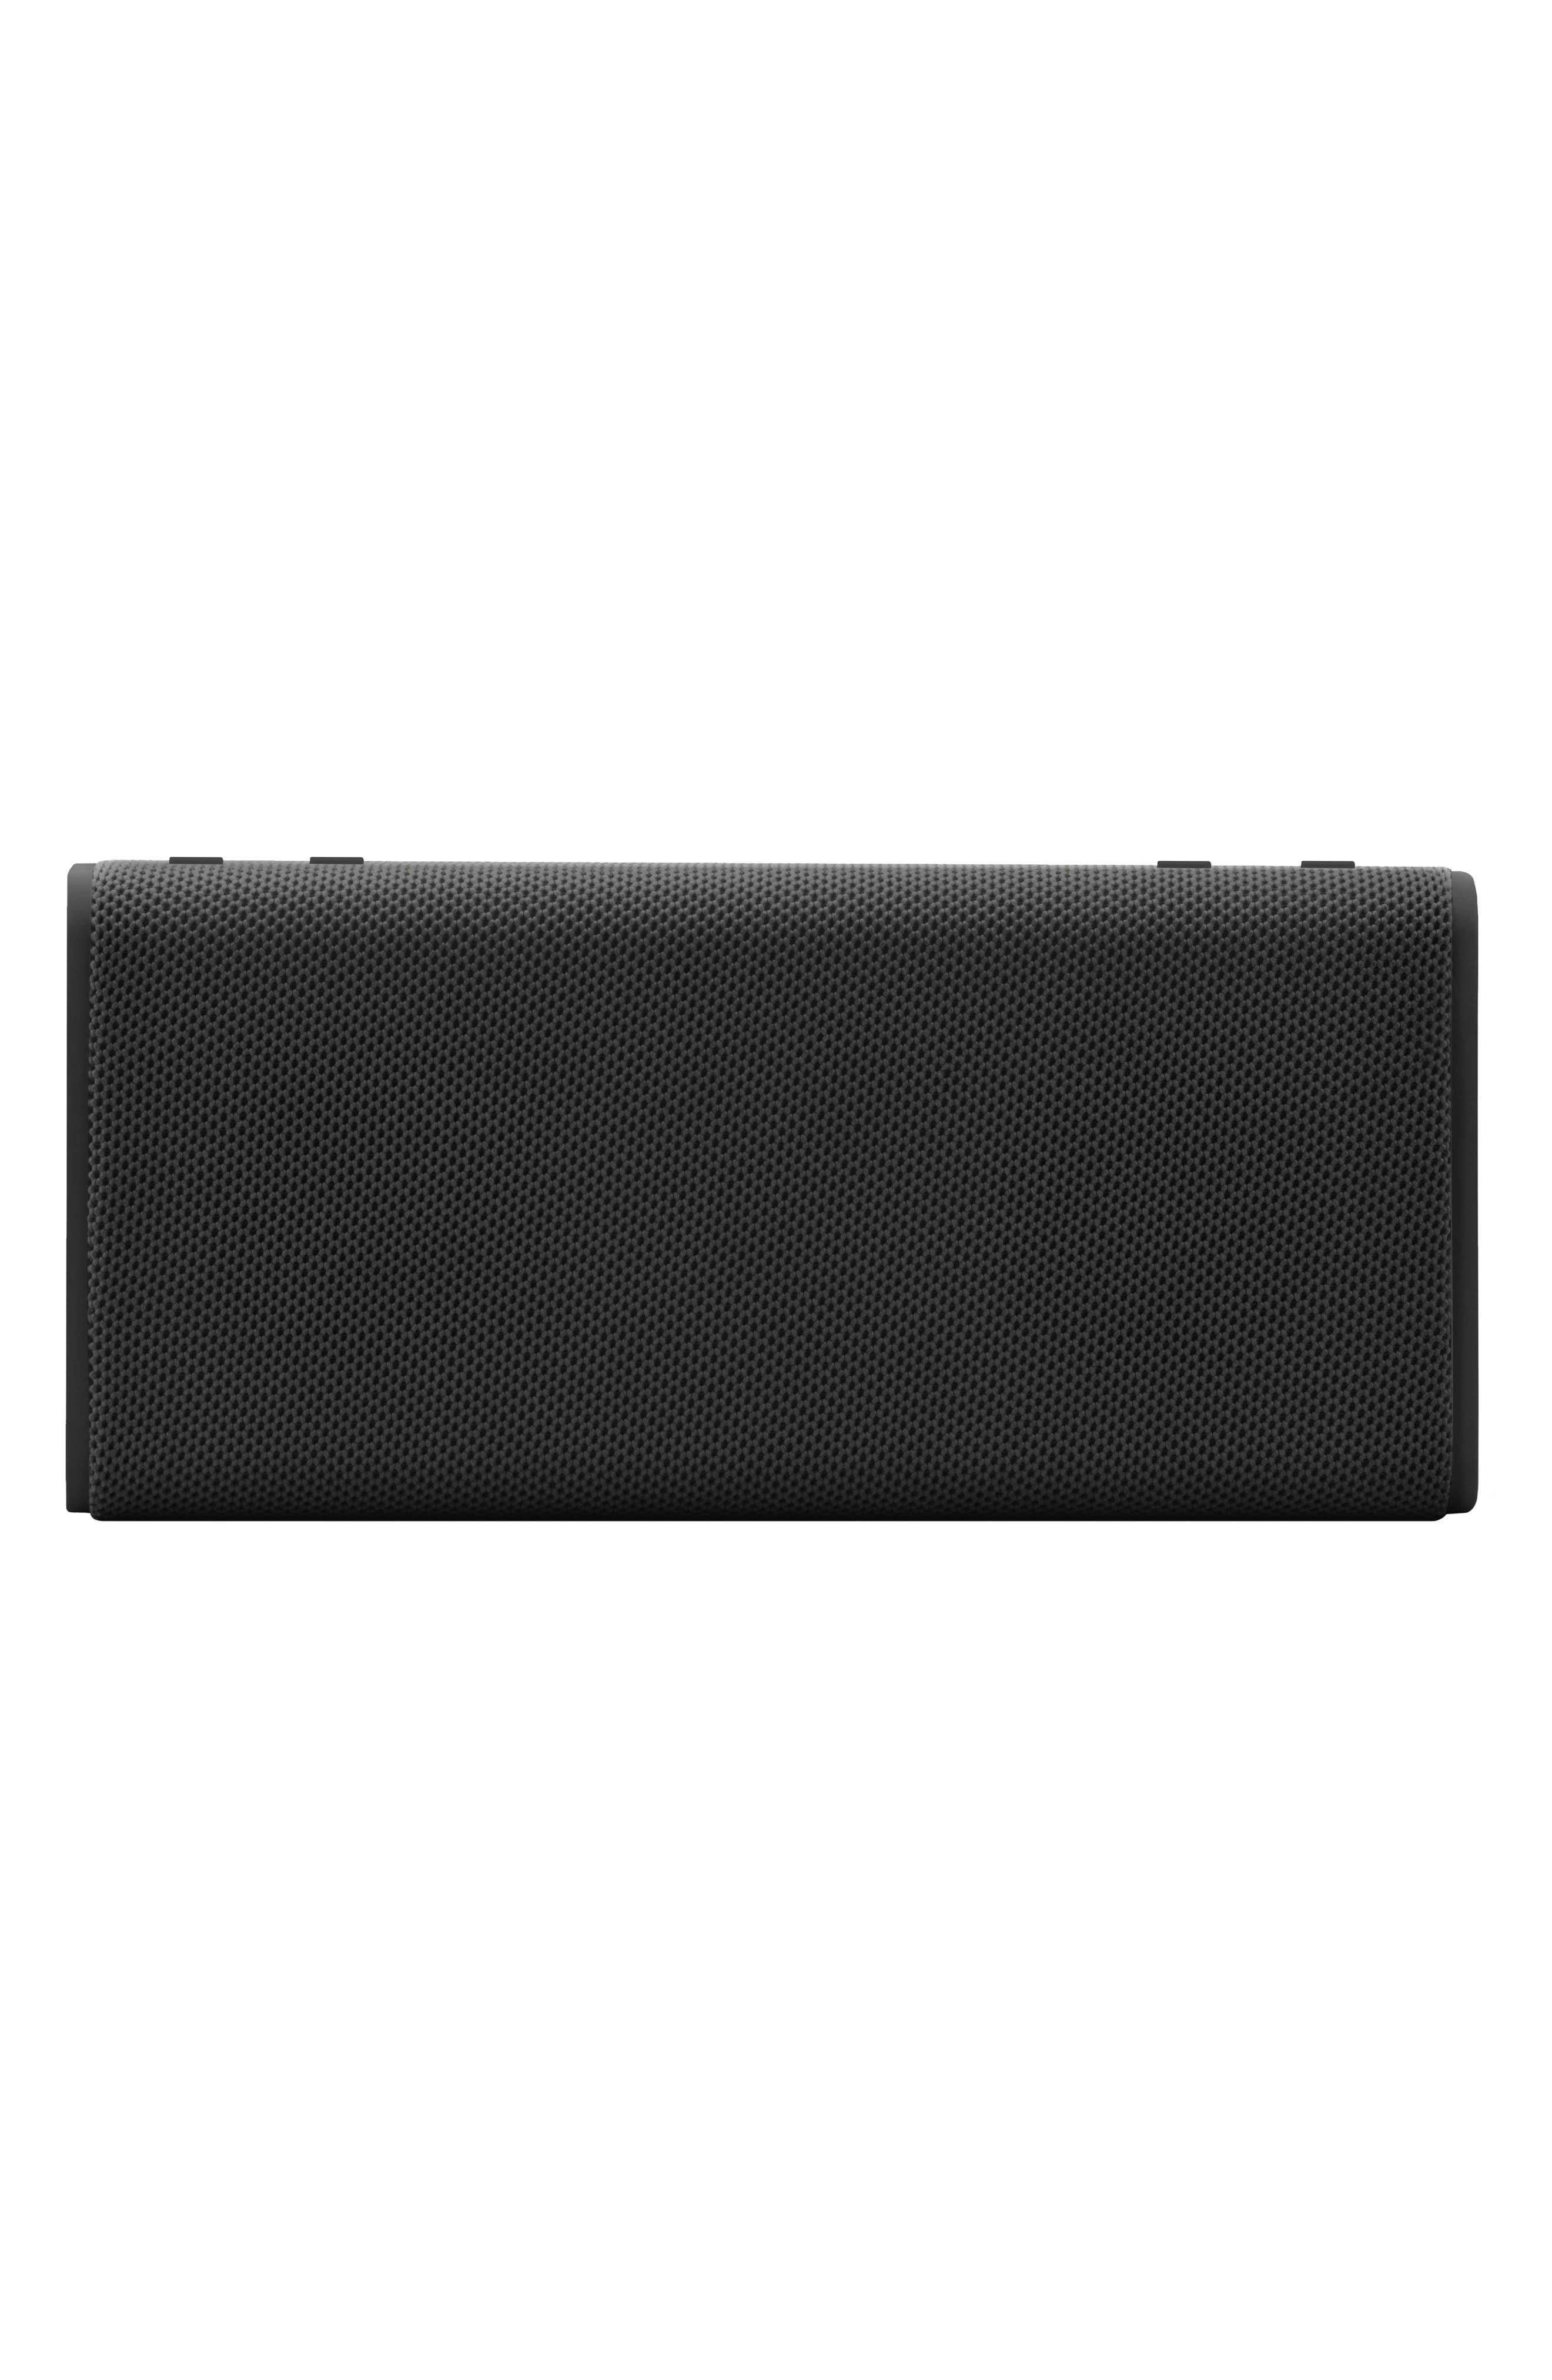 Make sure you\\\'re prepared to blast your favorite jams at a moment\\\'s notice with this super-portable, Bluetooth-enabled speaker that easily slips into your bag. Plus, you can connect two speakers together for stereo sound. Style Name: Urbanista Brisbane Portable Speaker. Style Number: 6124743. Available in stores.